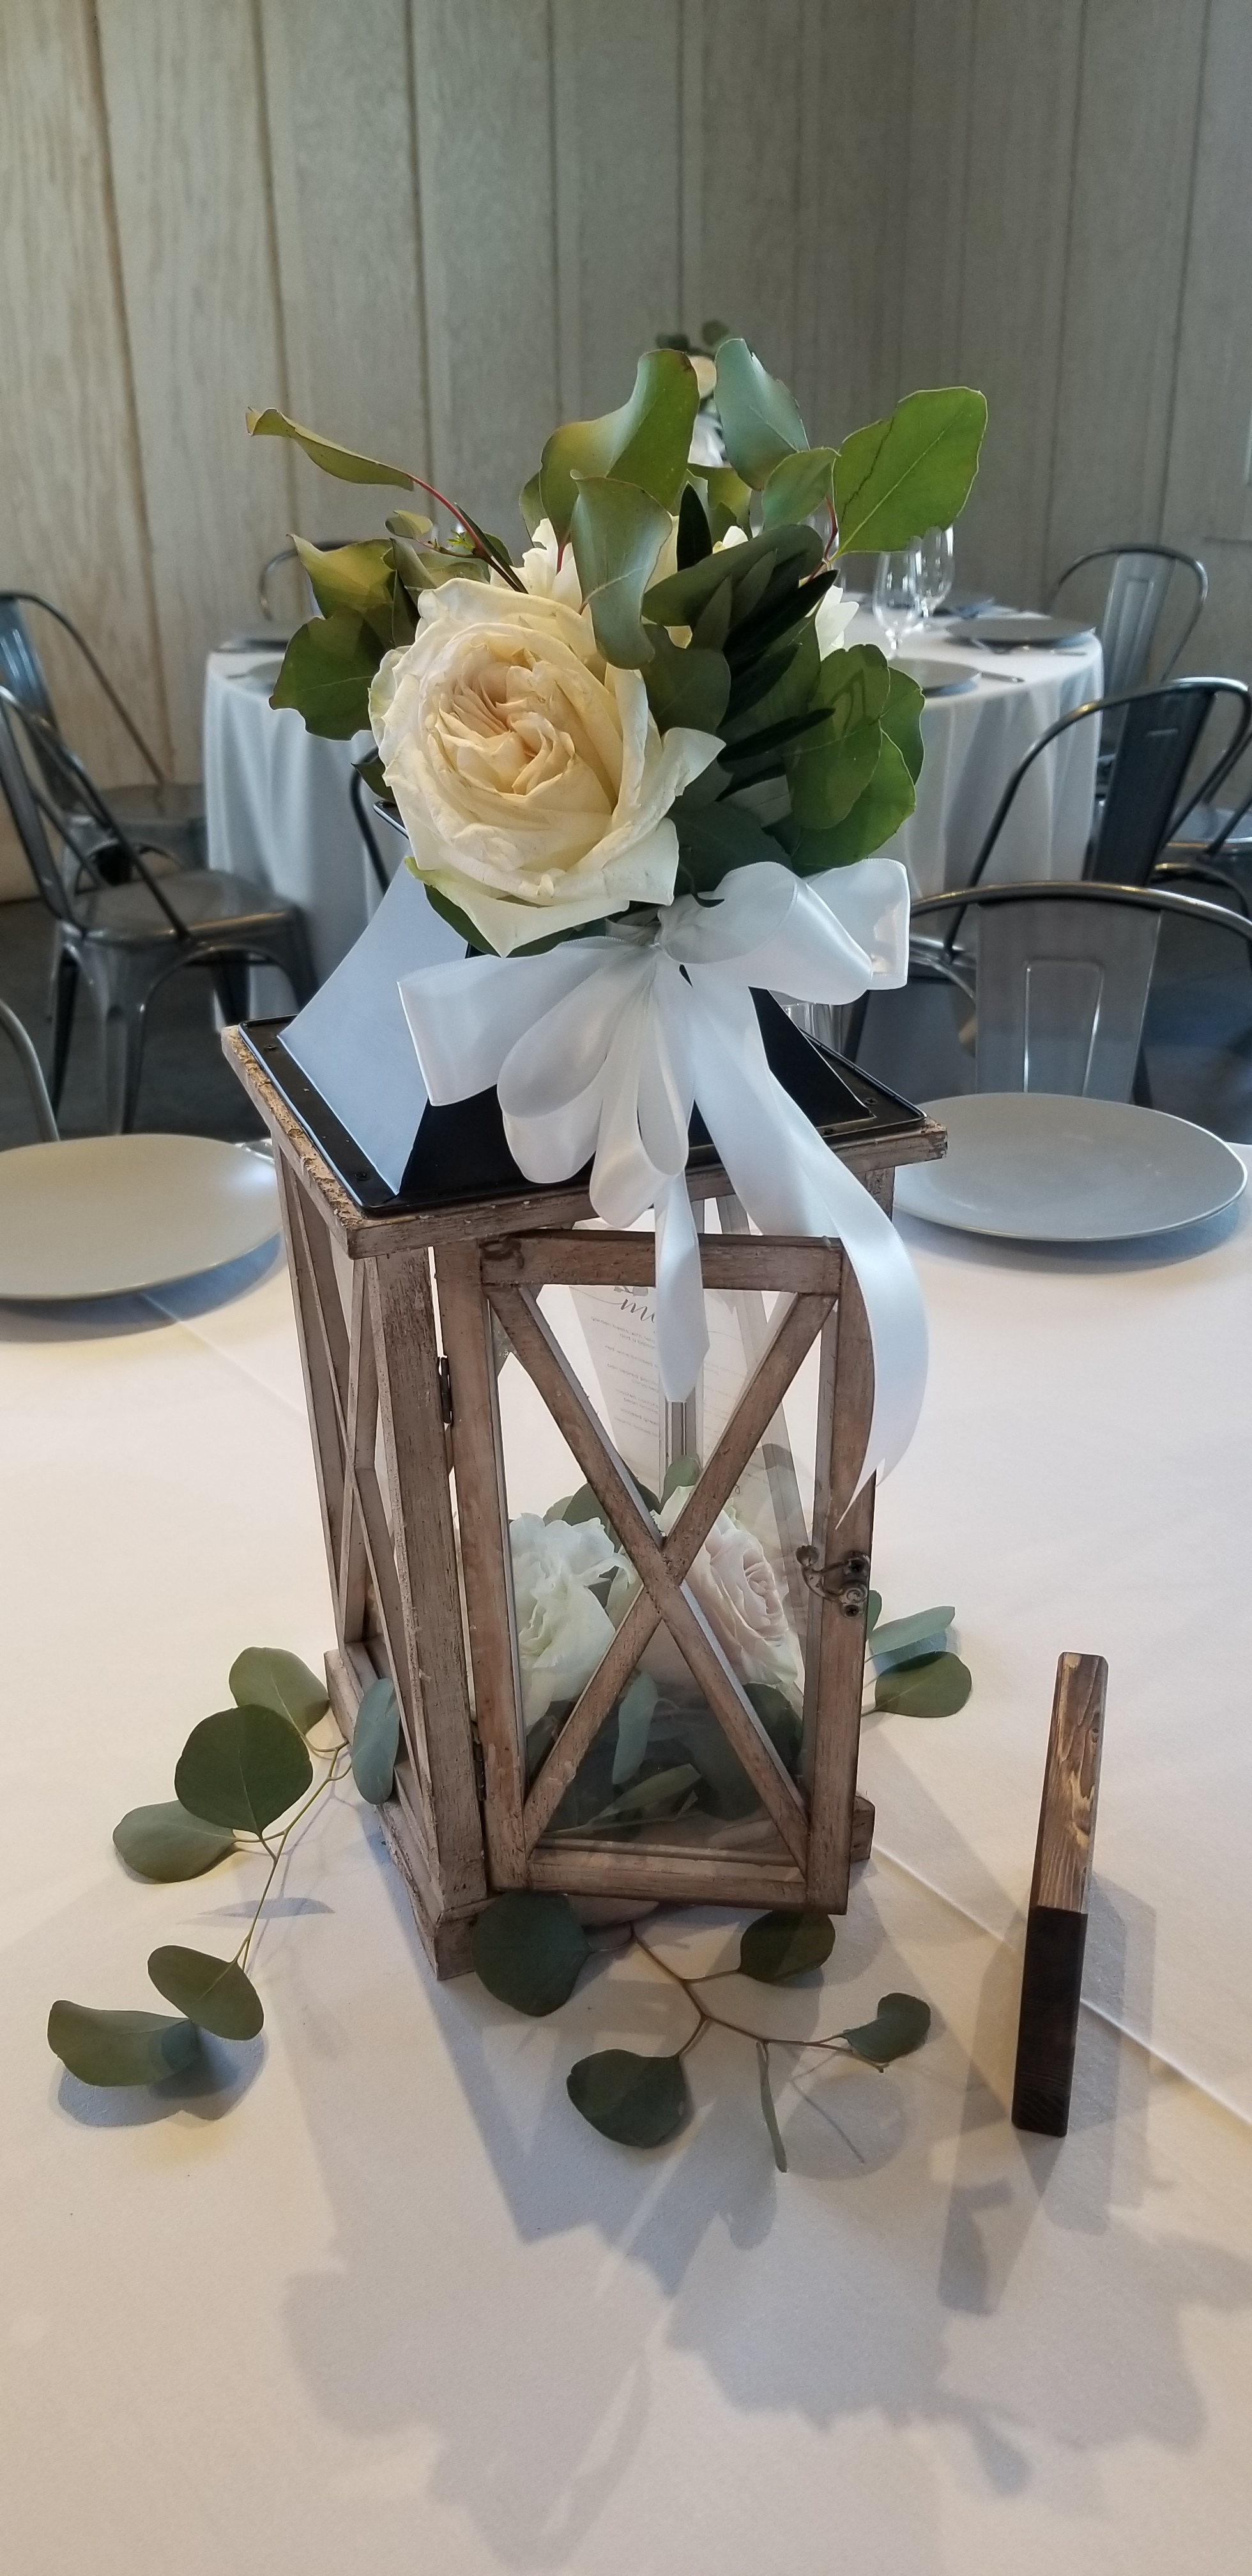 Wedding centerpiece, rustic lantern adorned with fresh flowers and greenery.